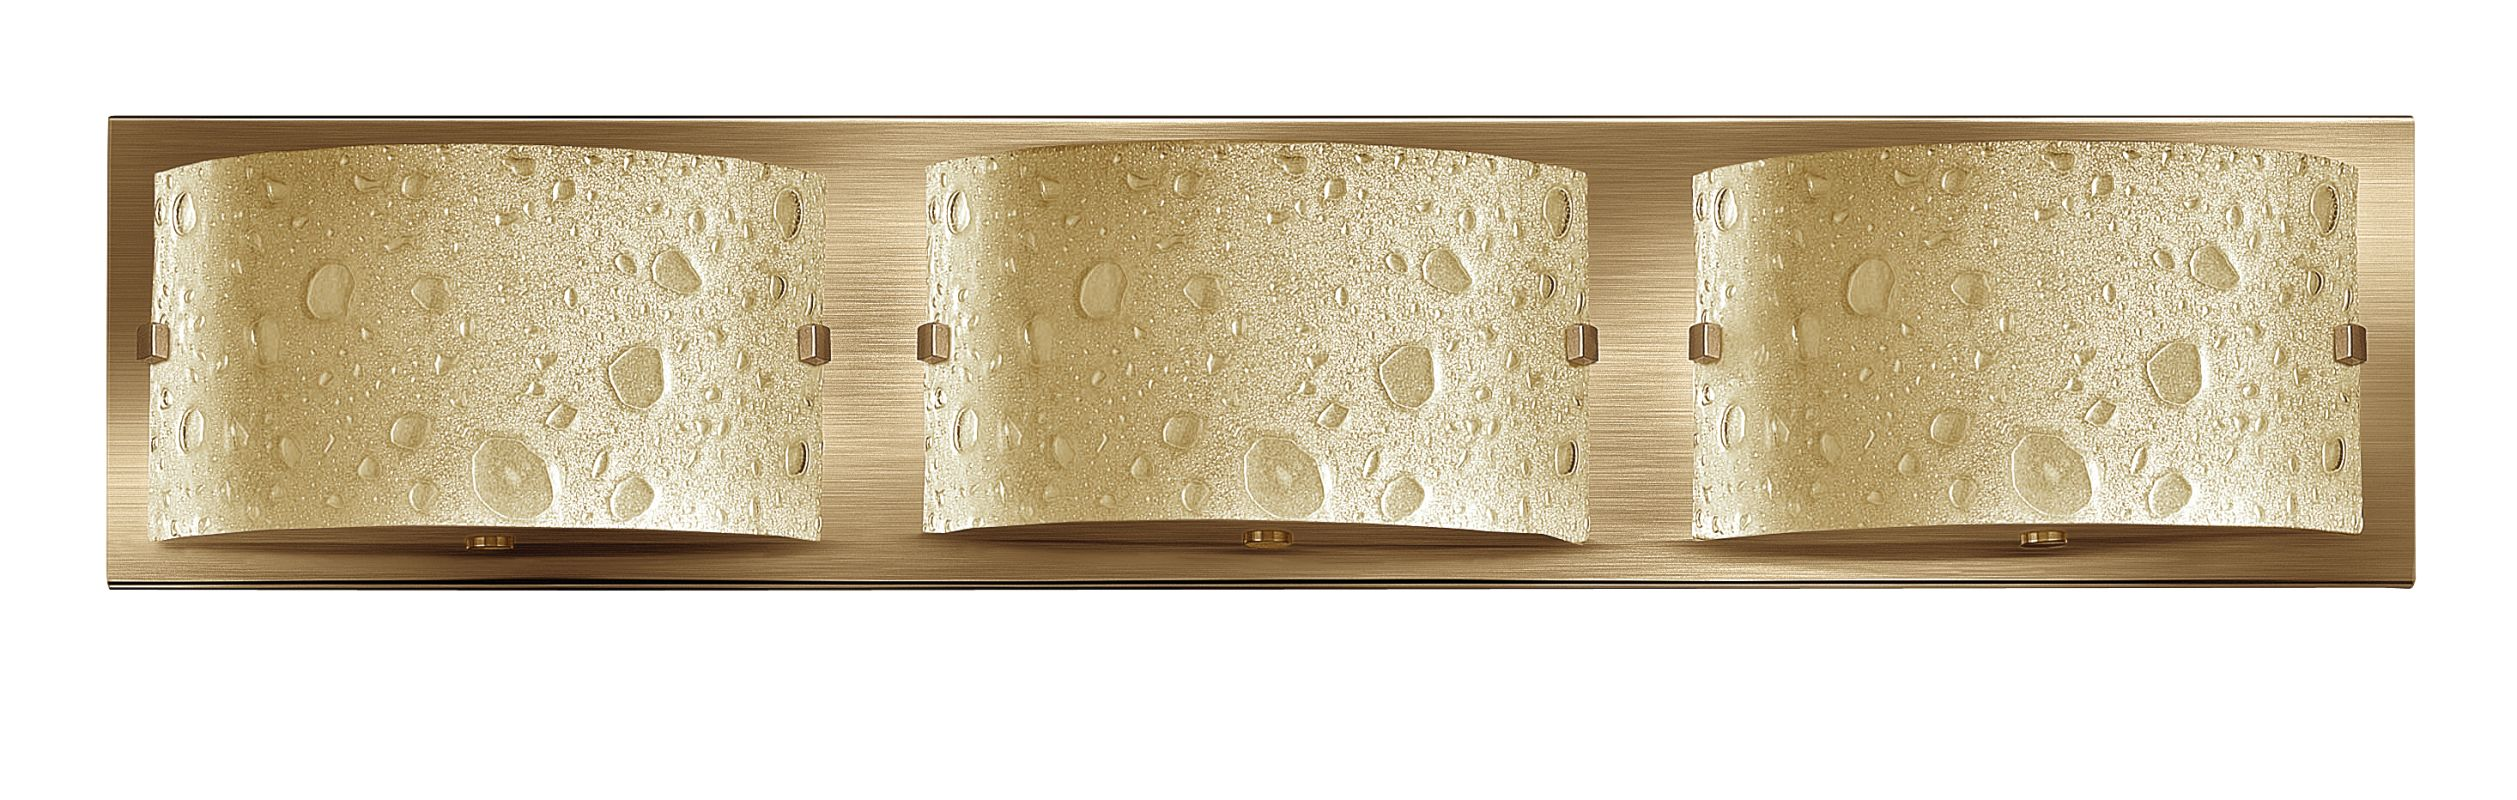 "Hinkley Lighting 5923BR 3 Light 24"" Wide Bathroom Fixture from the"